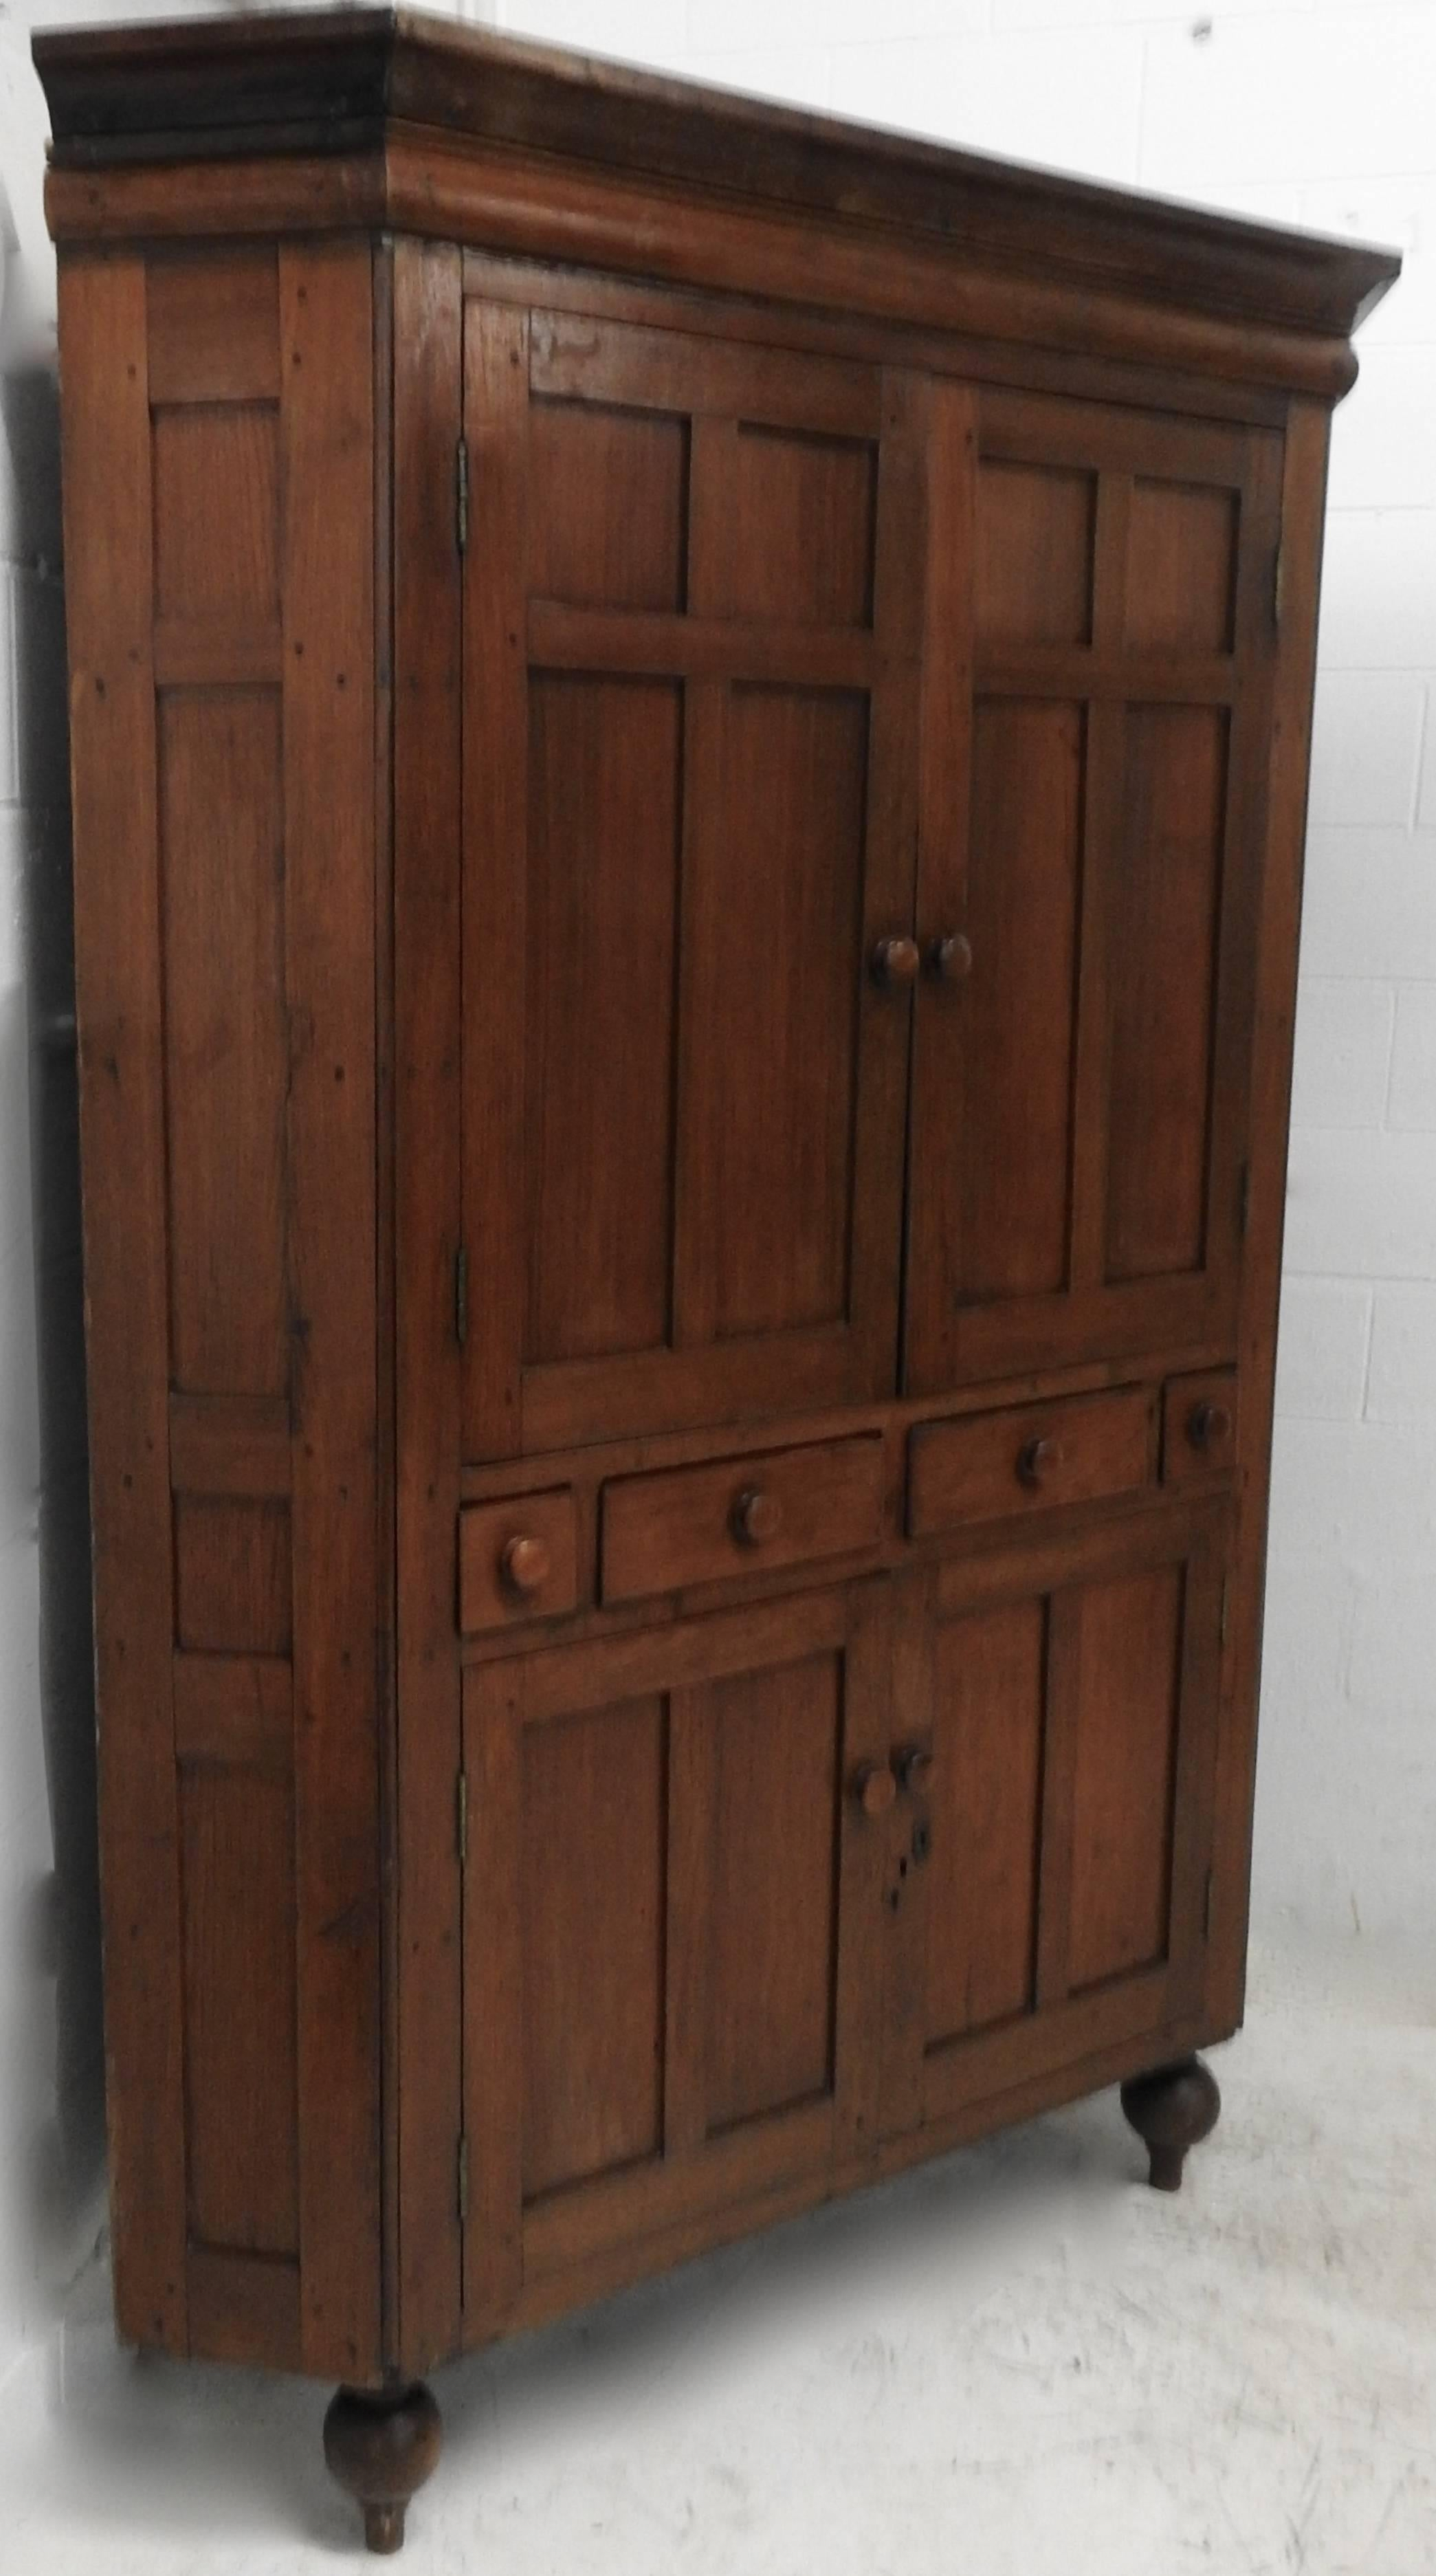 We Are Offering A New England Classic Corner Cabinet Made Primarily Of  Walnut With Some Cherry